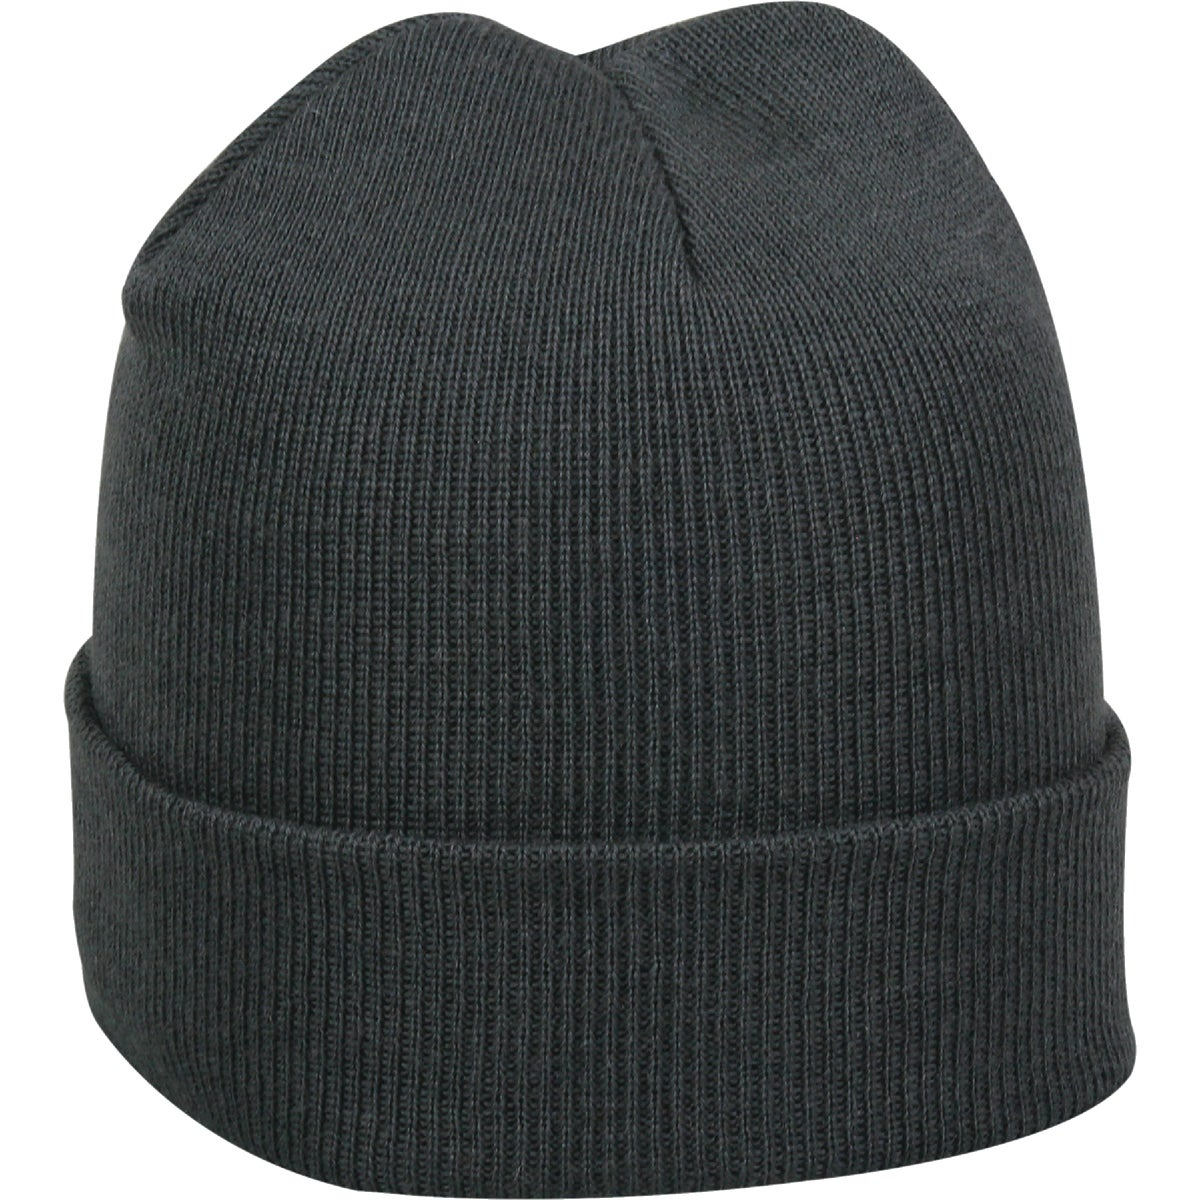 HEATHER GREY OSLO CAP